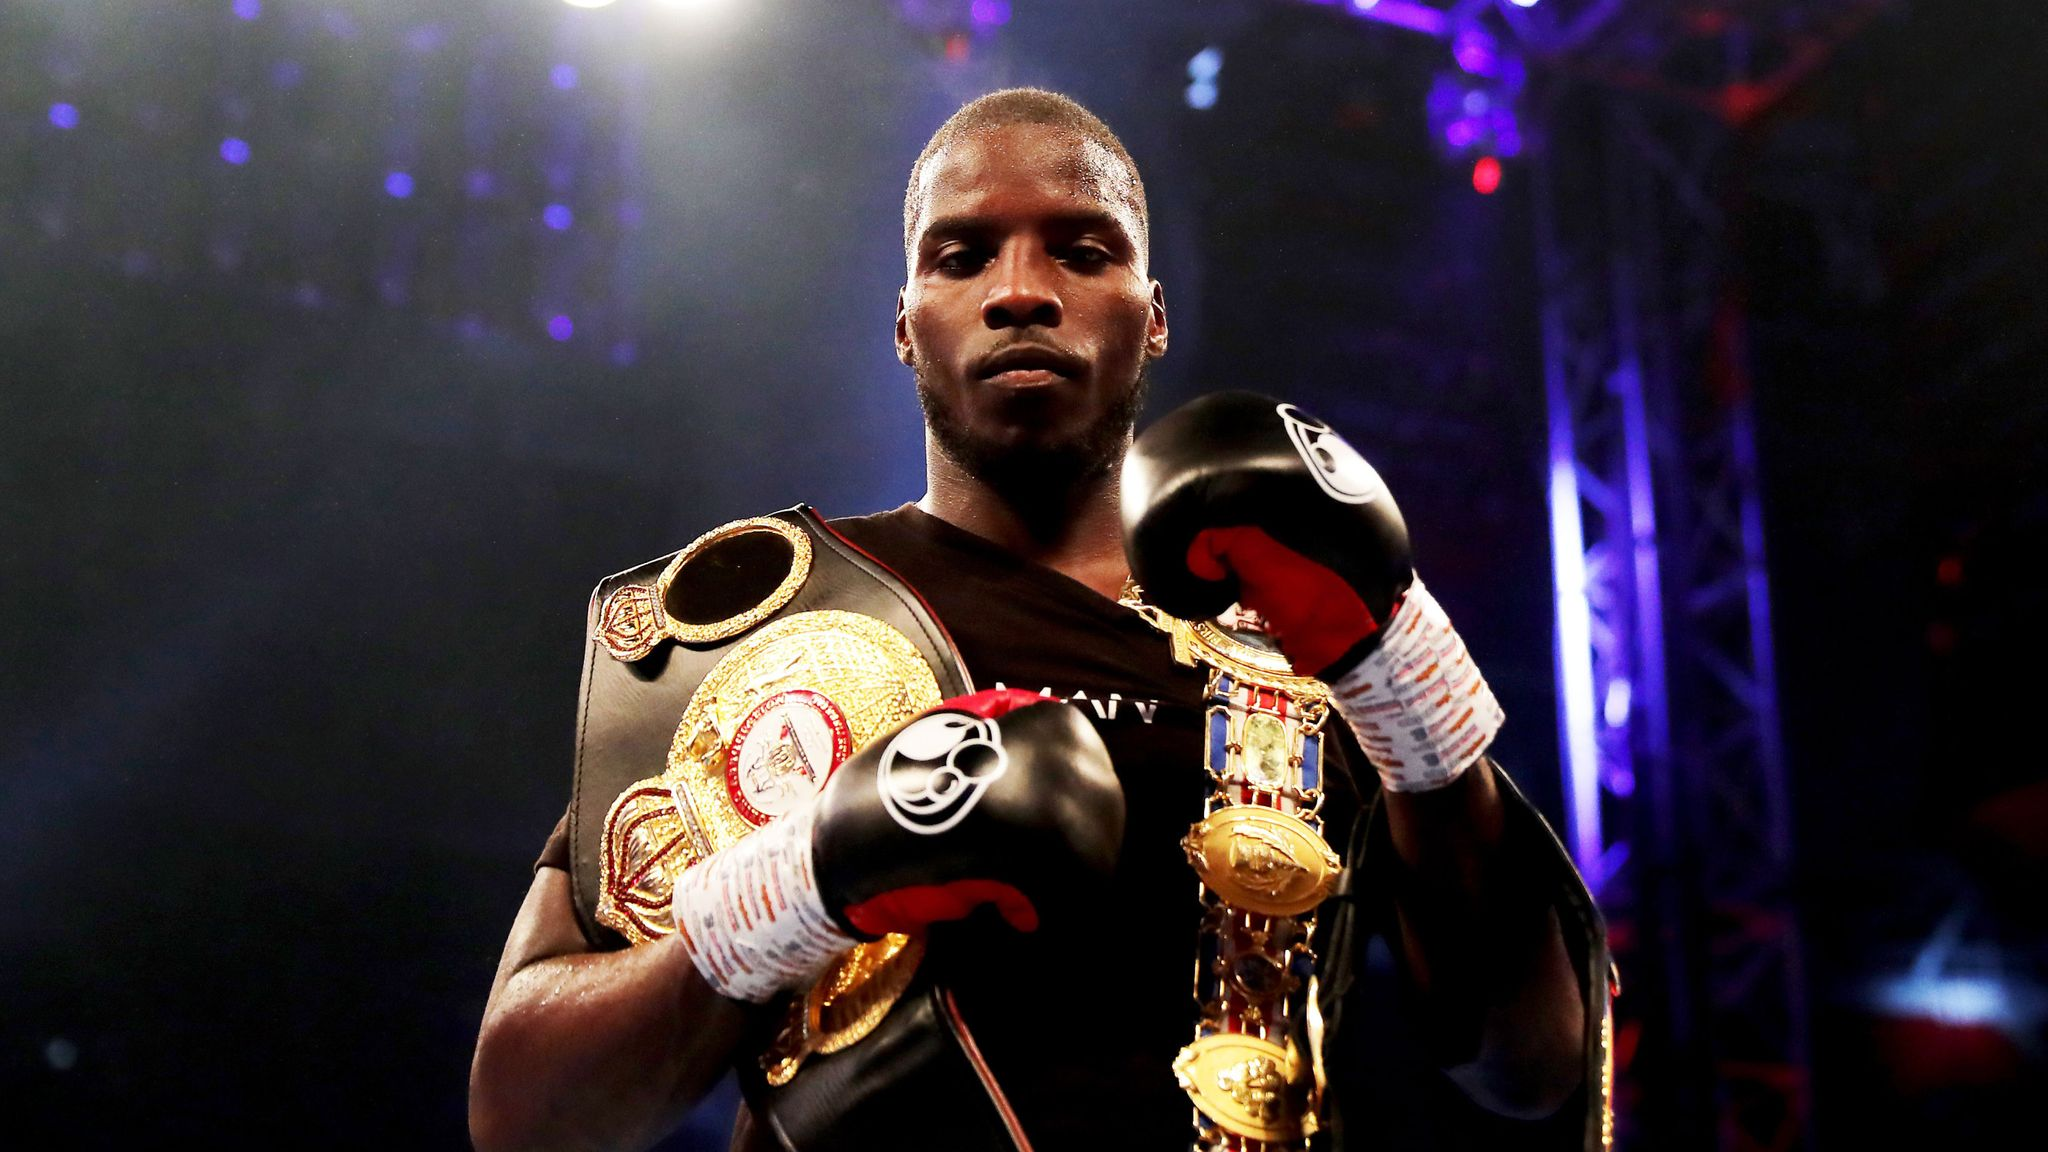 Lawrence Okolie Awaits New Opponent For December 12 Fight At Wembley